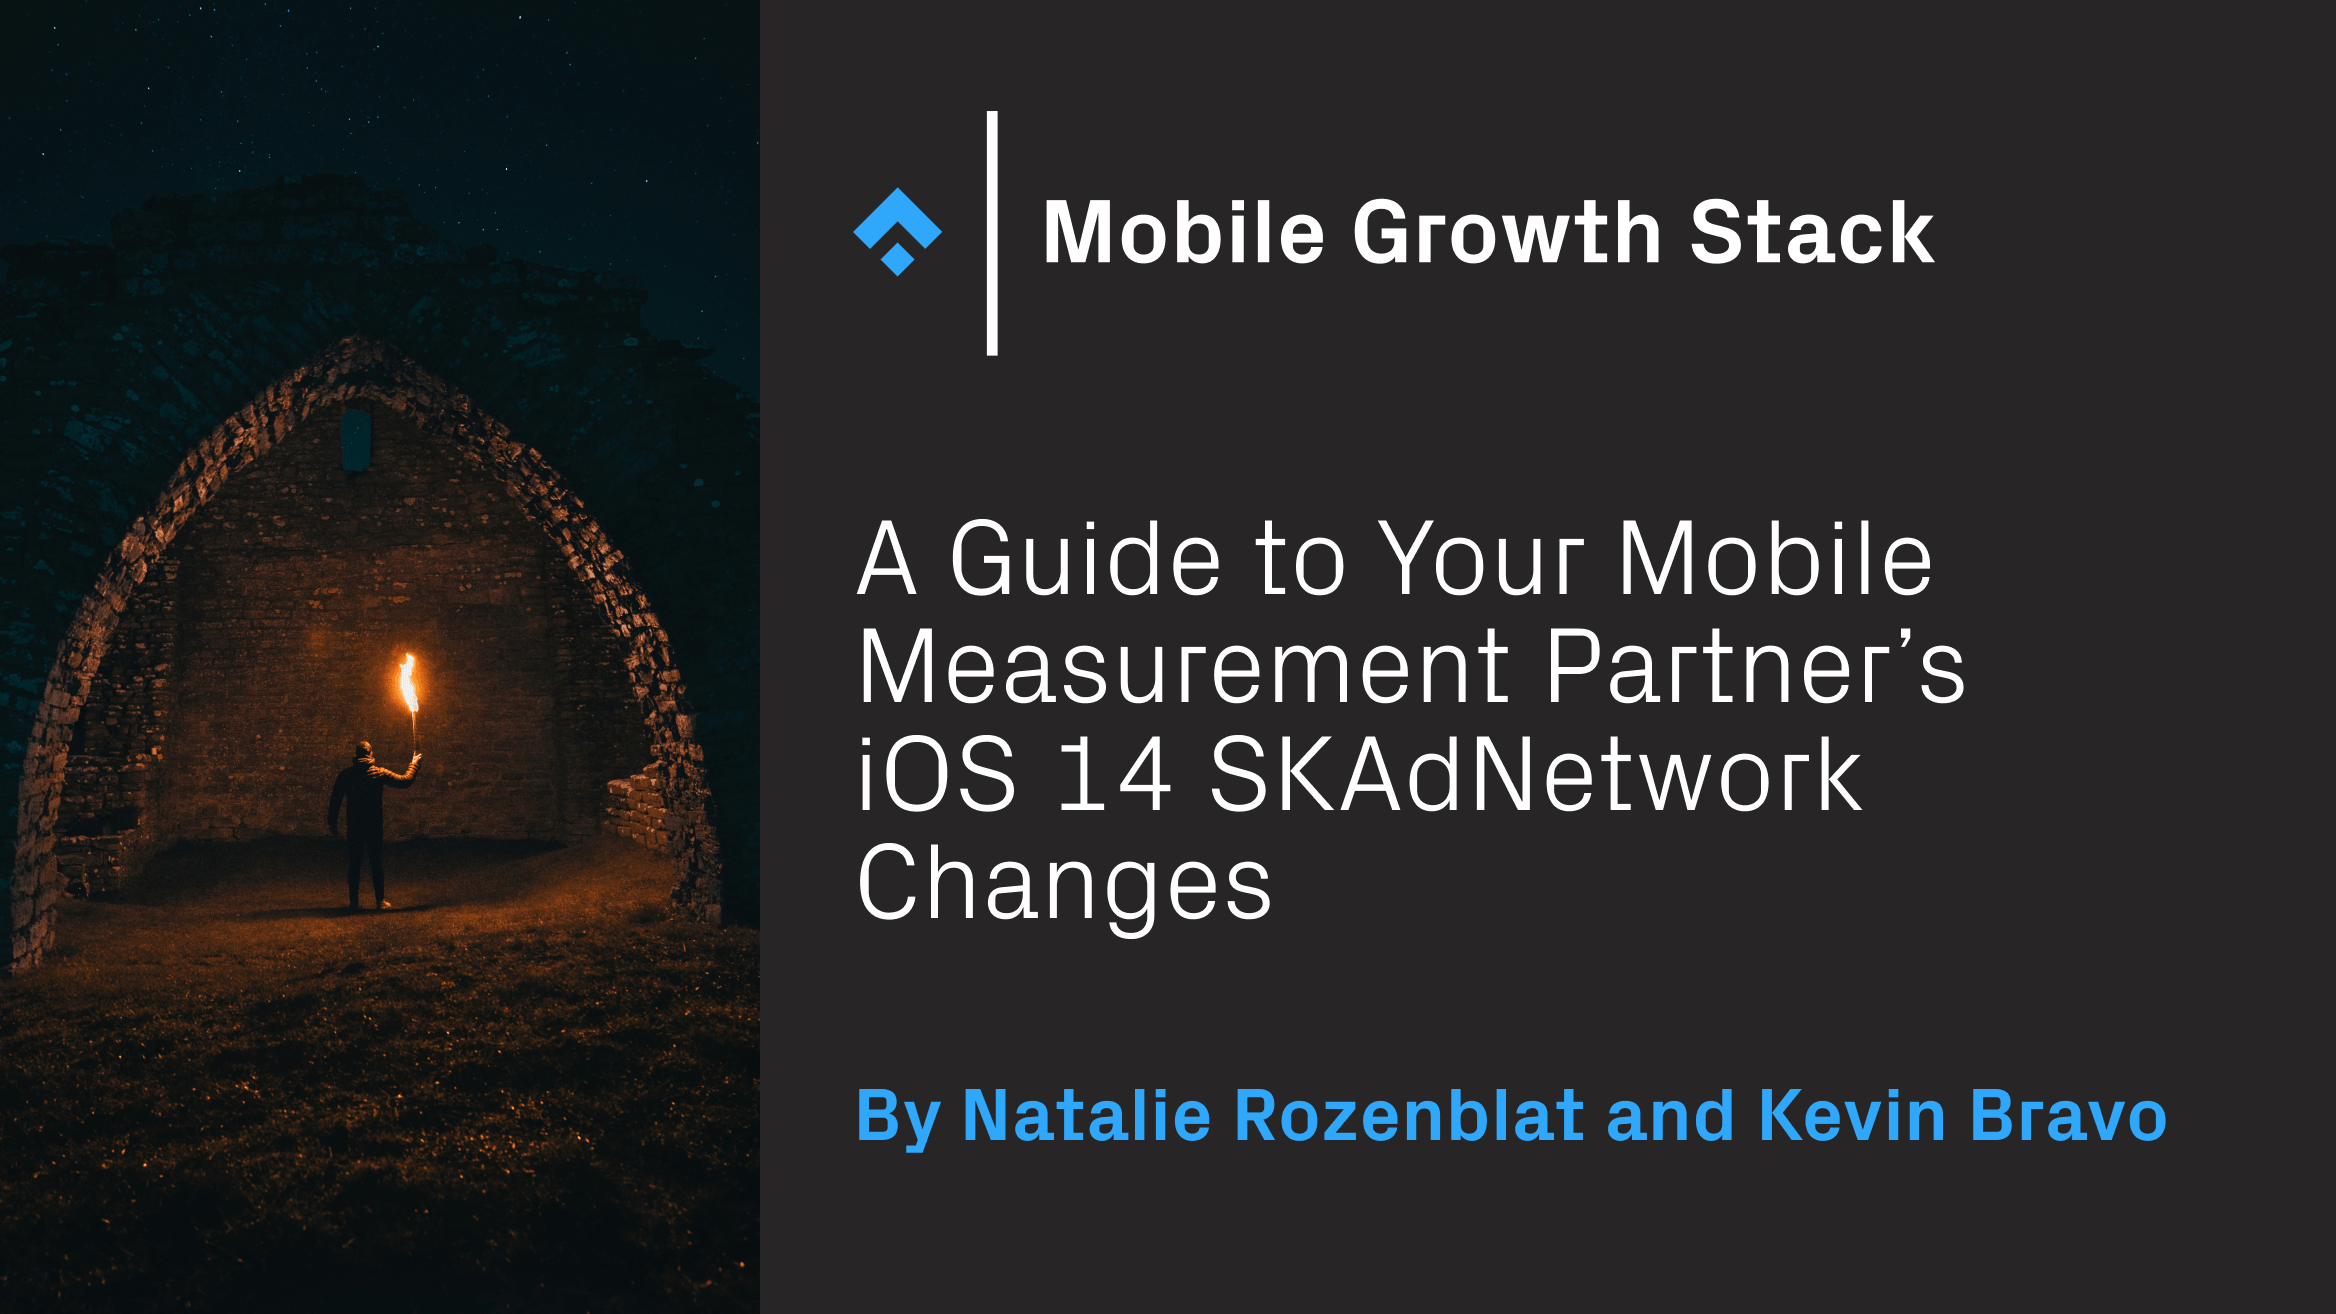 A Guide to Your Mobile Measurement Partner's iOS 14 SKAdNetwork Changes